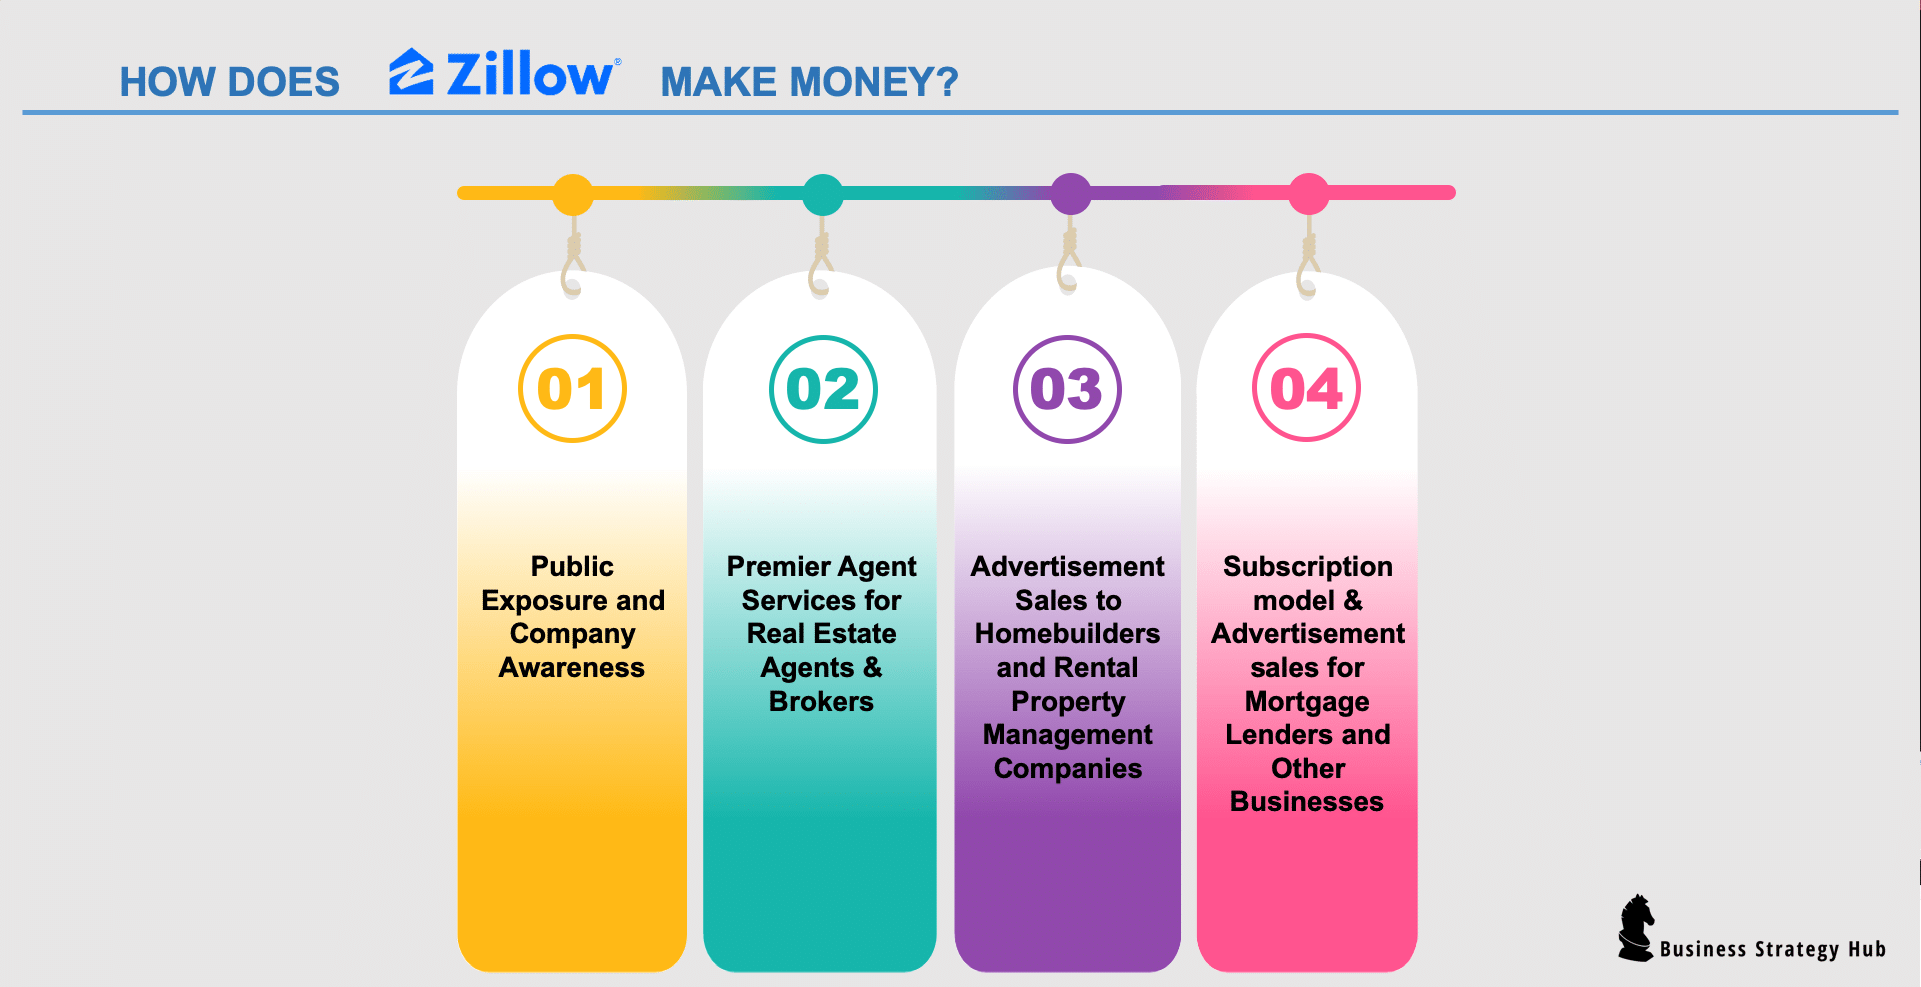 How Does Zillow Make Money?